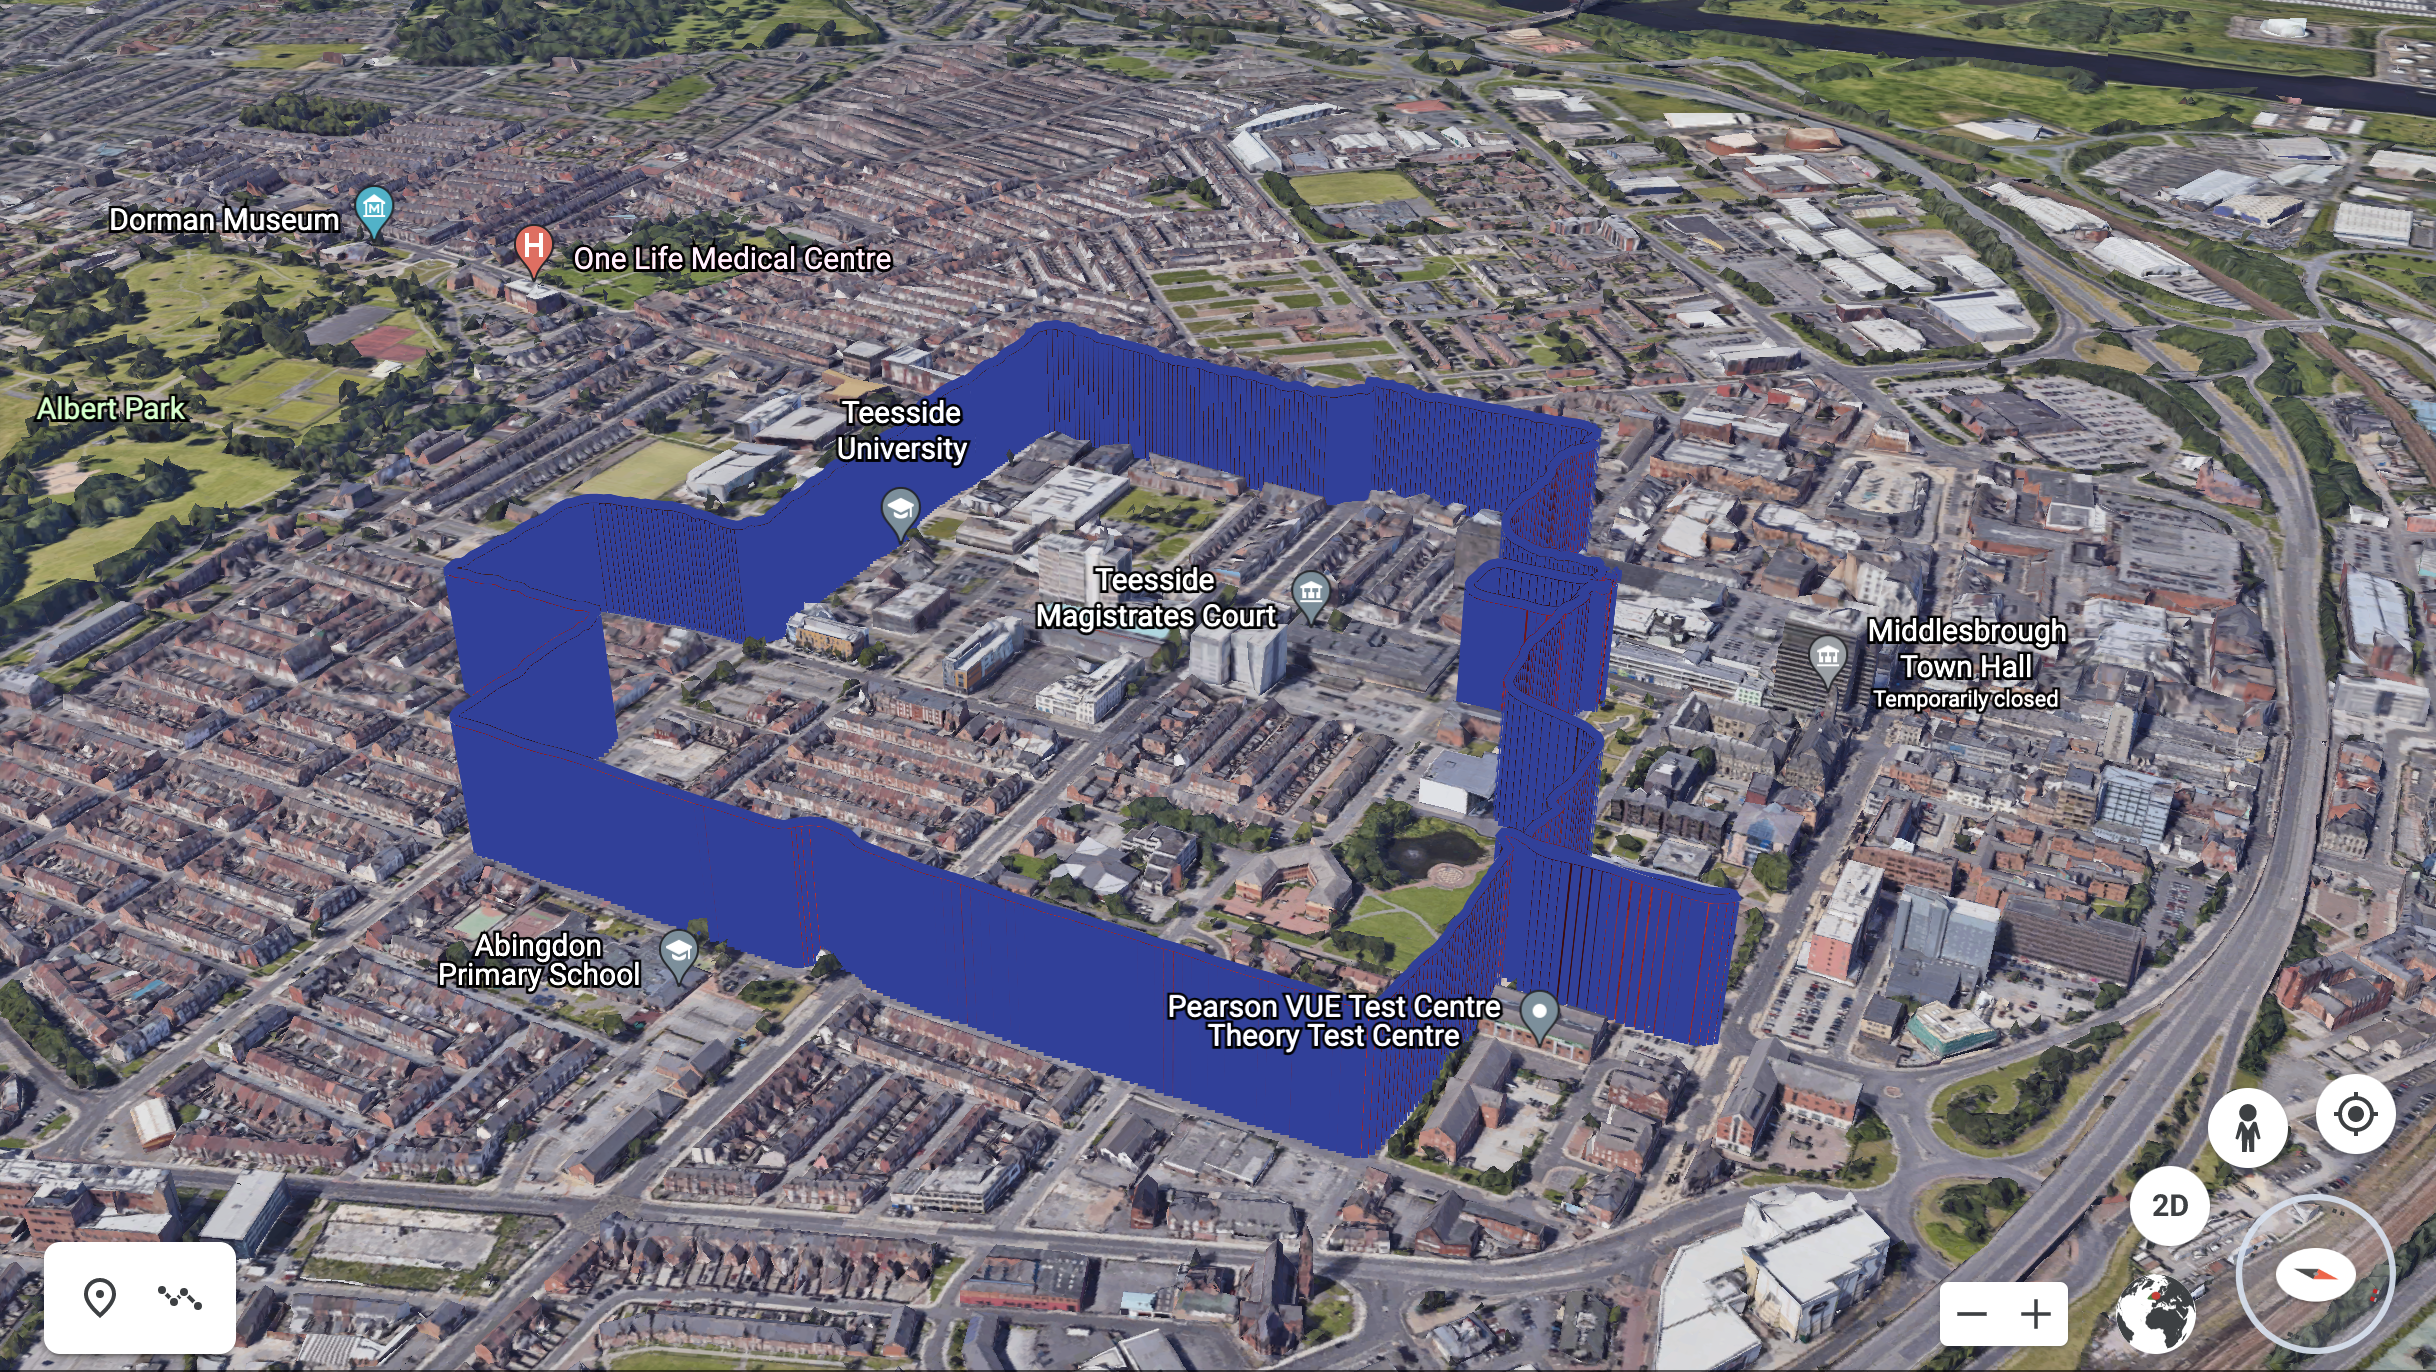 air pollution traces mapped across Middlesbrough city centre